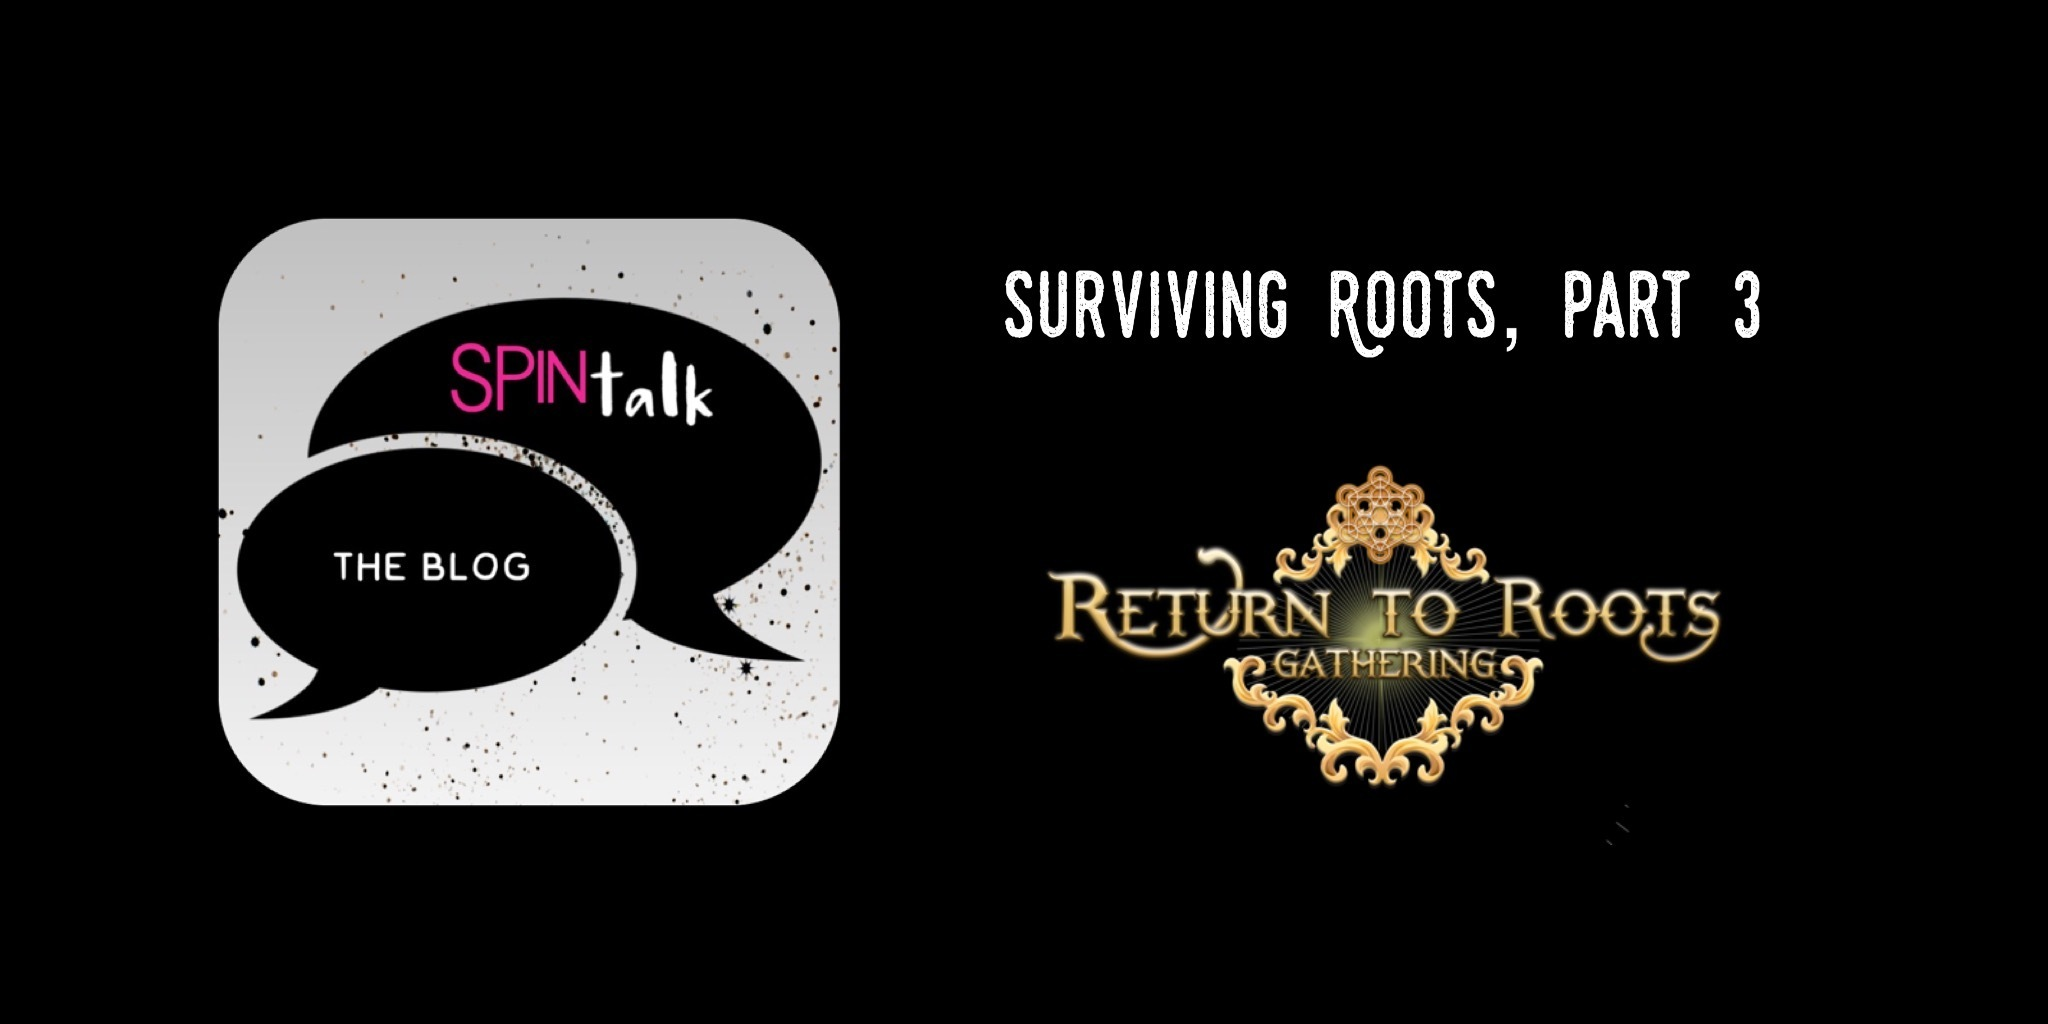 Spintalk Roots 3